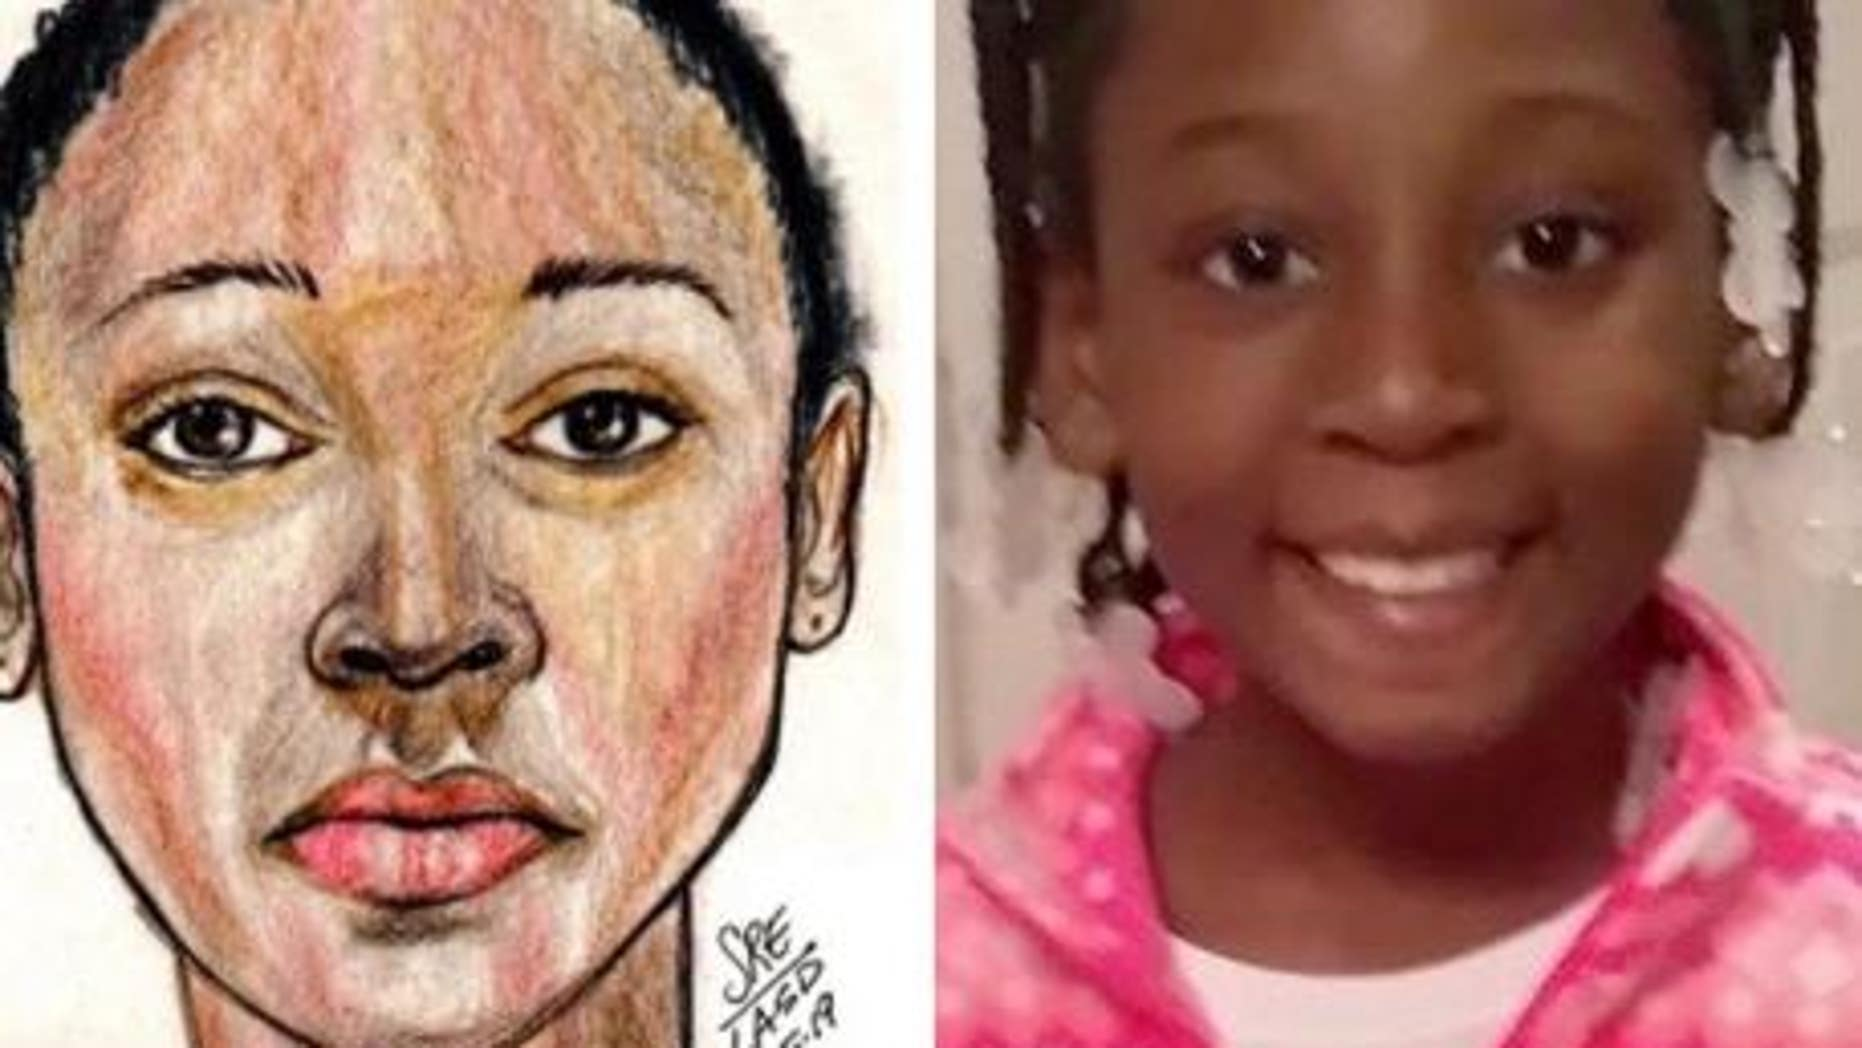 California Police Identify Dead Girl's Body Found In Duffel Bag